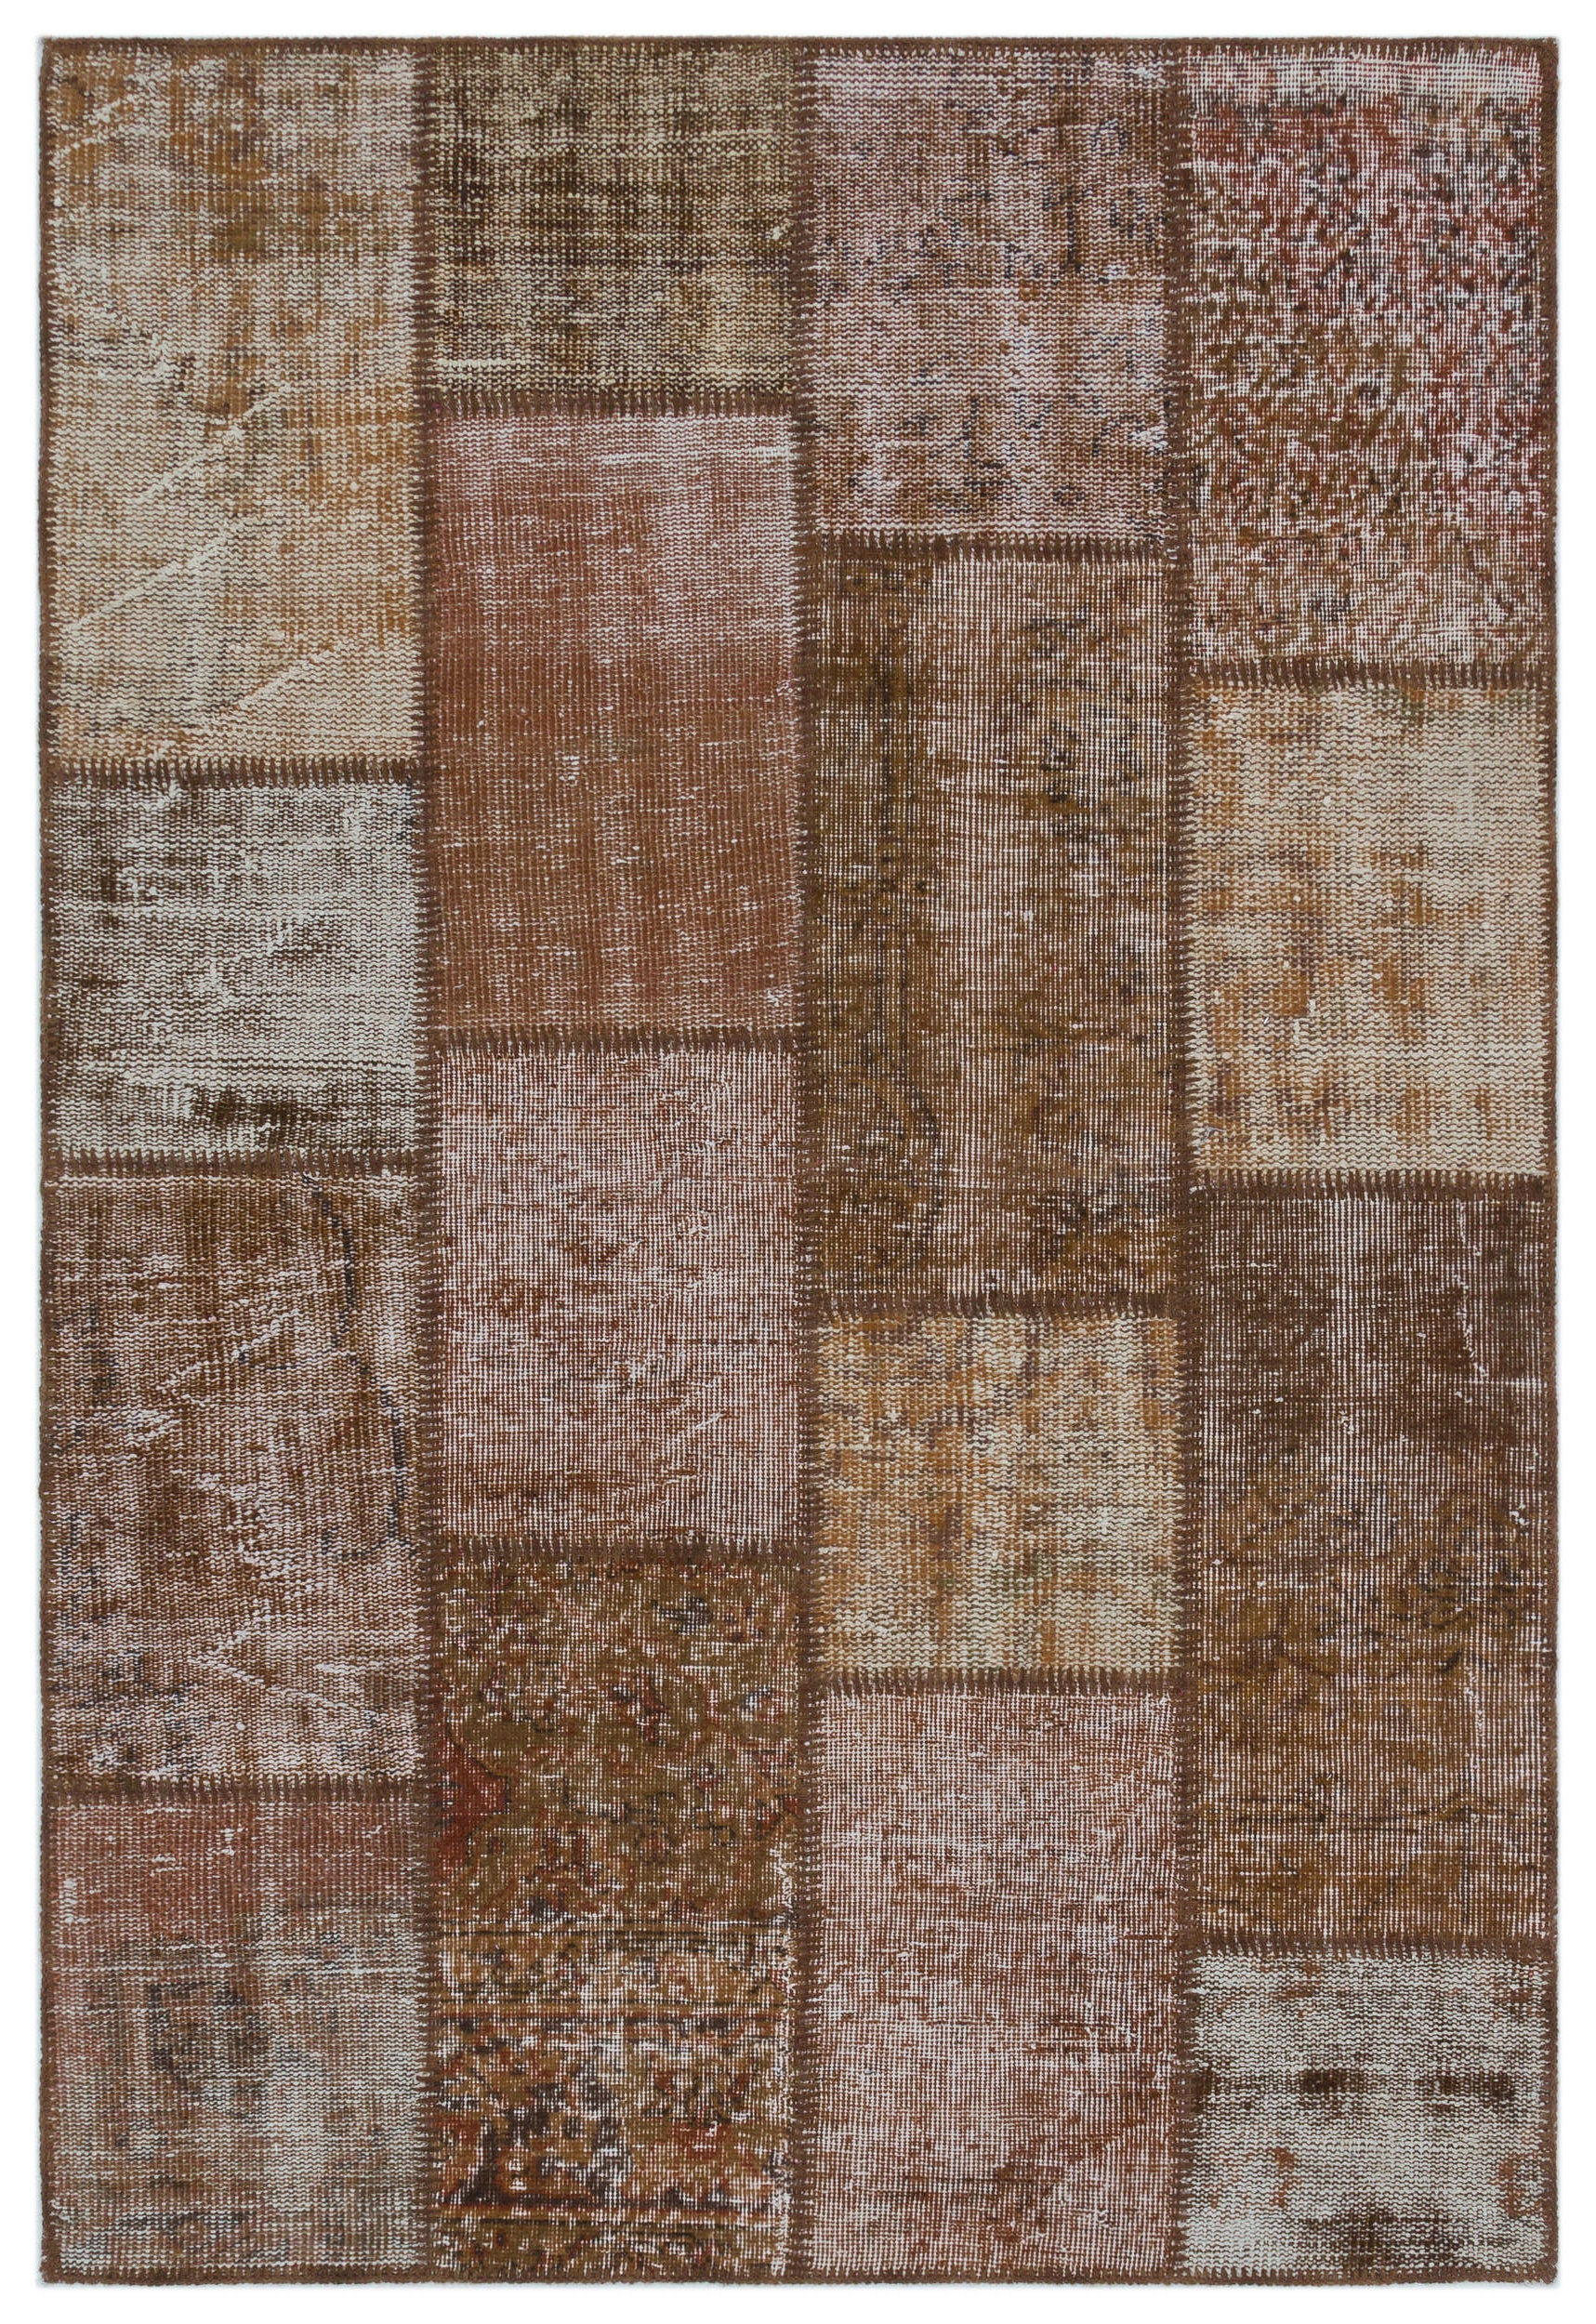 Brown Over Dyed Patchwork Unique Rug 4'0'' x 5'10'' ft 122 x 179 cm